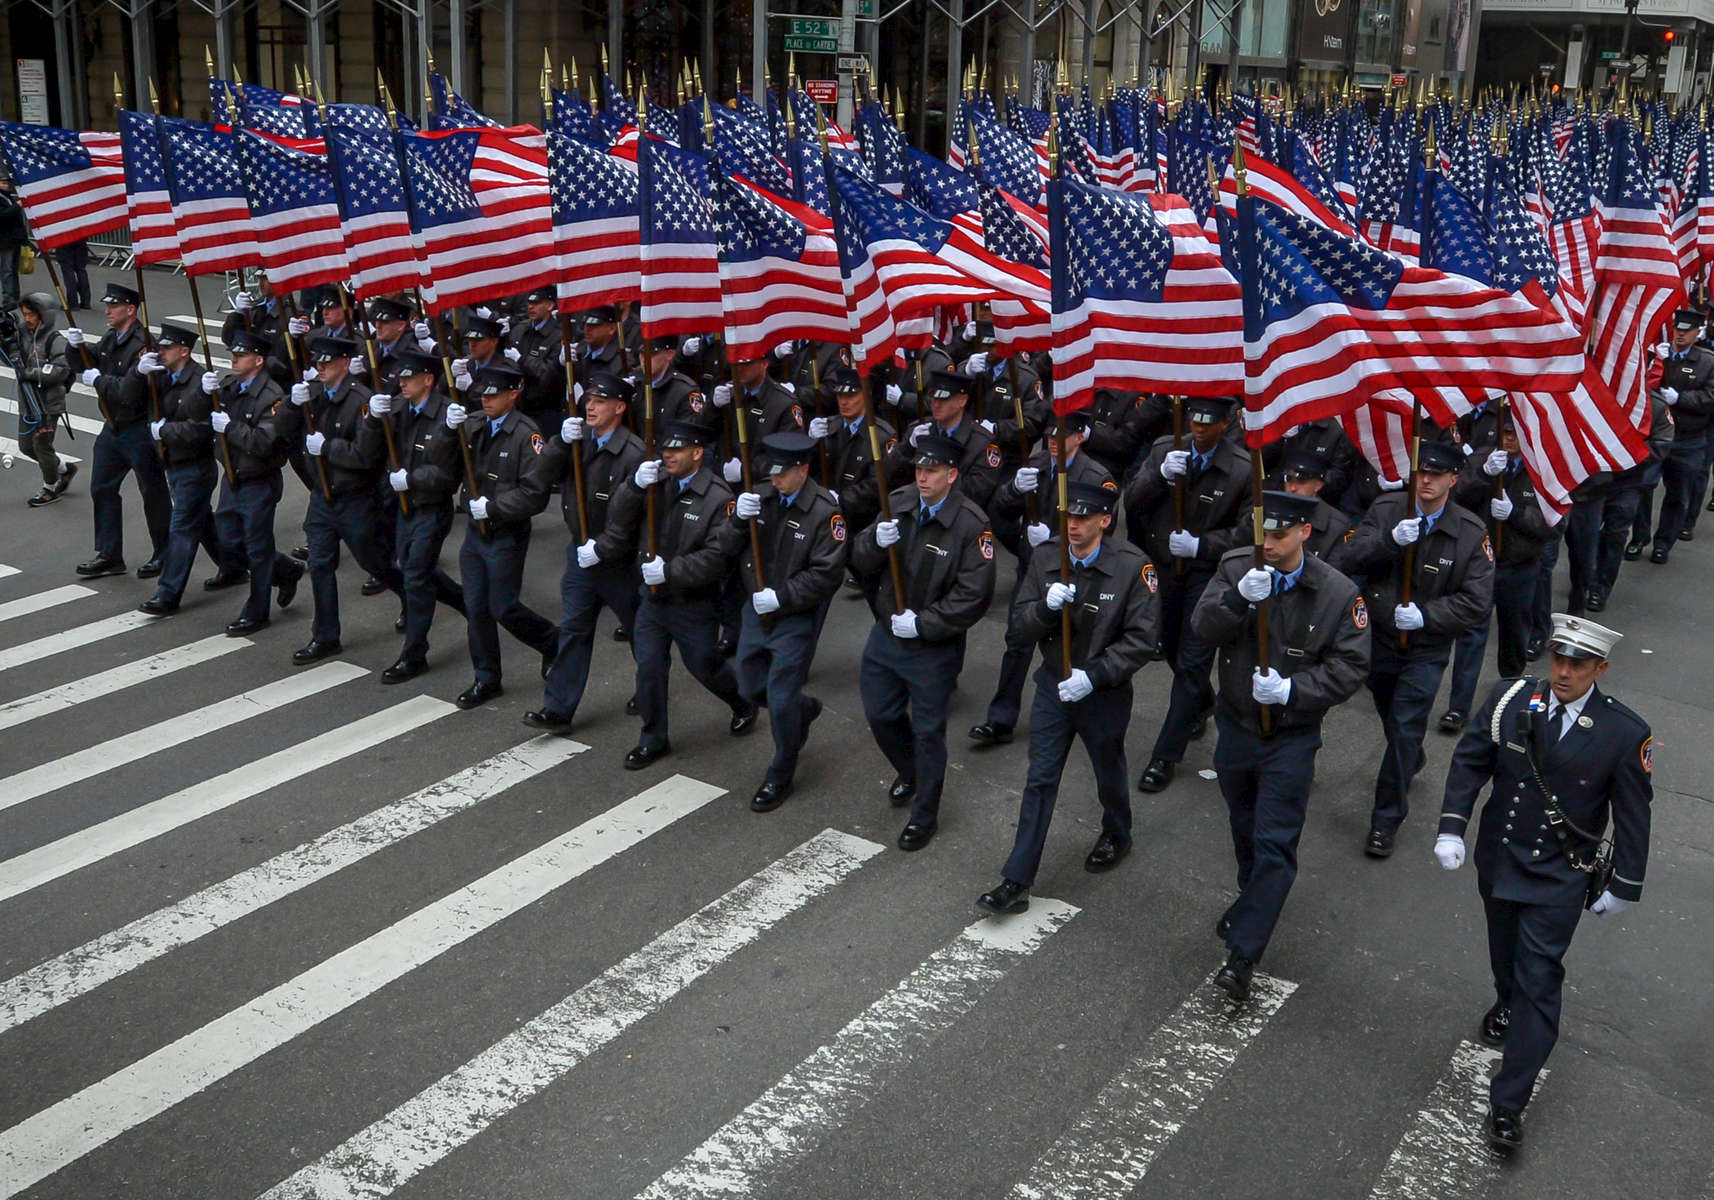 Members of the New York City Fire Department carry American flags as they march in the 253rd Annual Saint Patrick's Day Parade along 5th Avenue in Manhattan on Monday, March 17, 2014.